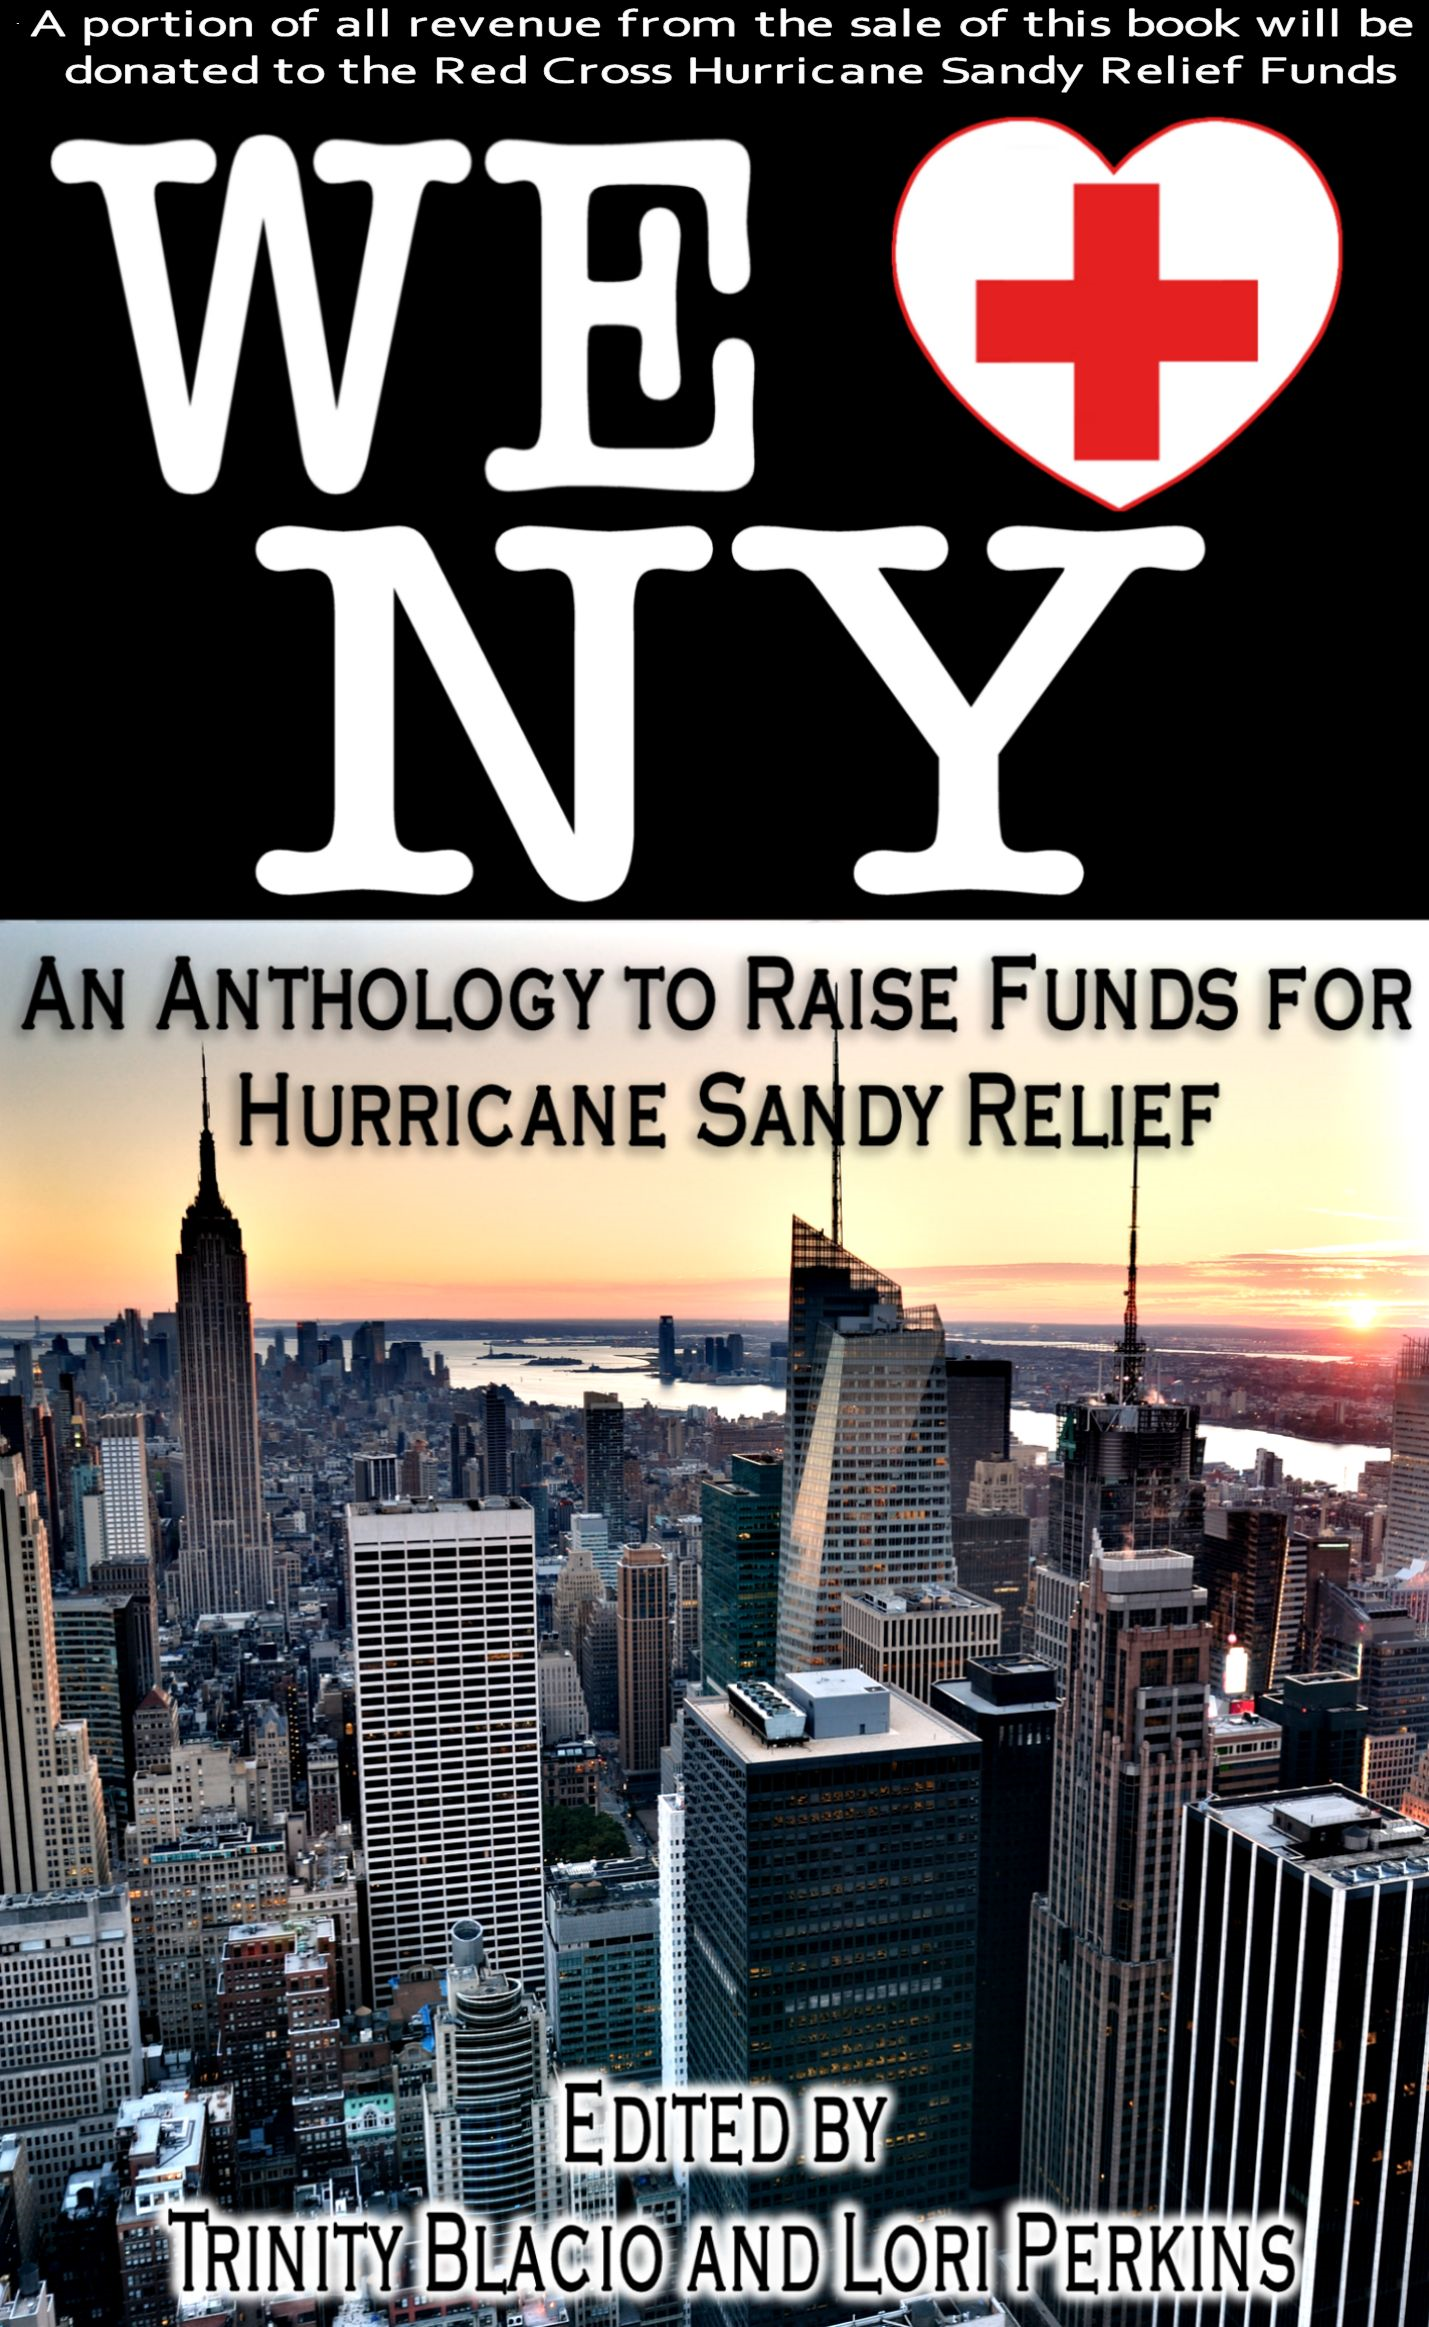 Trinity Blacio  Lori Perkins - We LOVE New York: A Romance Anthology to Raise Funds for Hurricane Sandy Relief